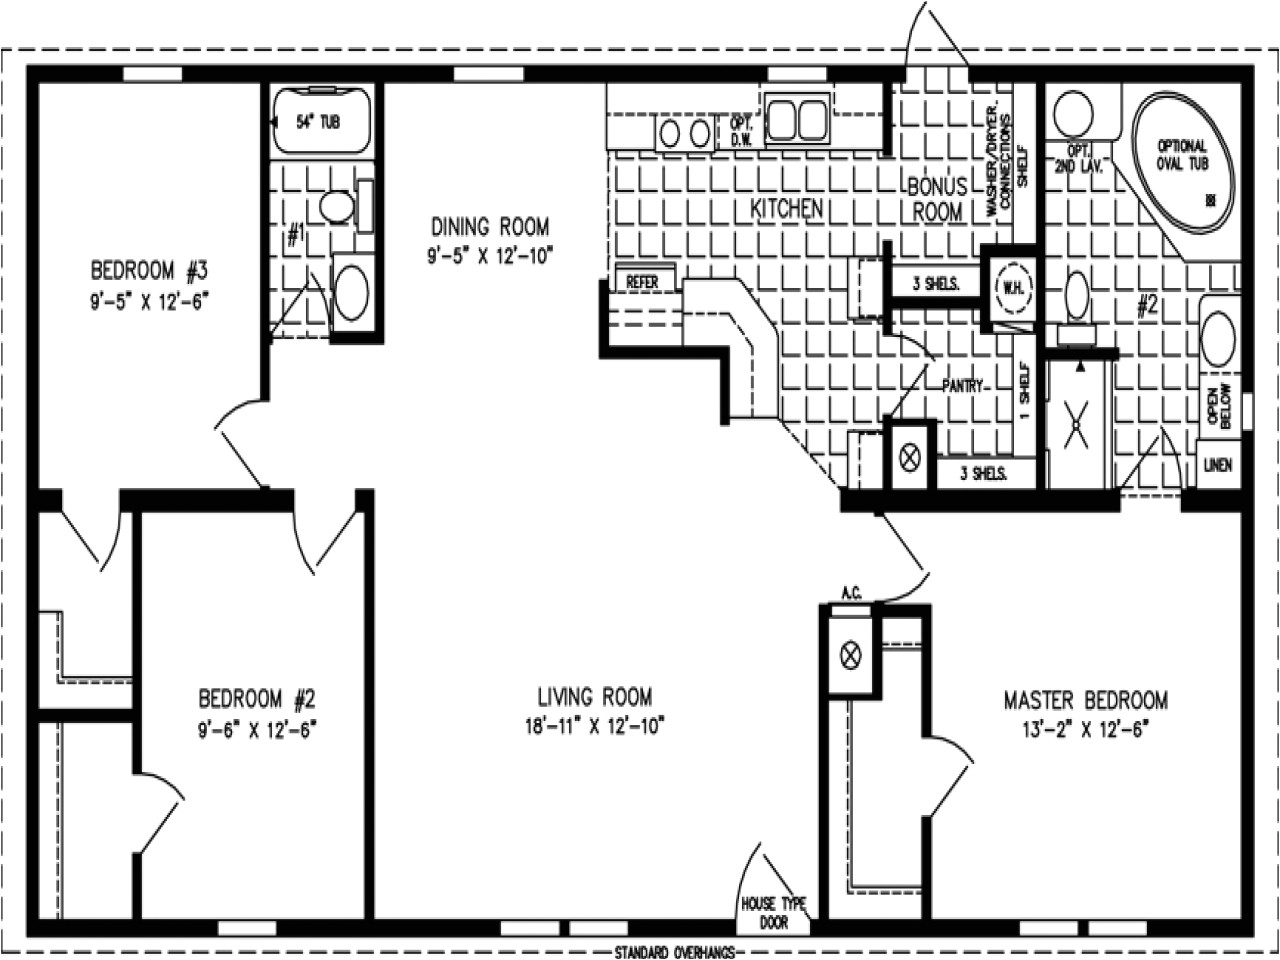 9e18c8de4a21bc75 1200 sq ft home floor plans 4000 sq ft homes